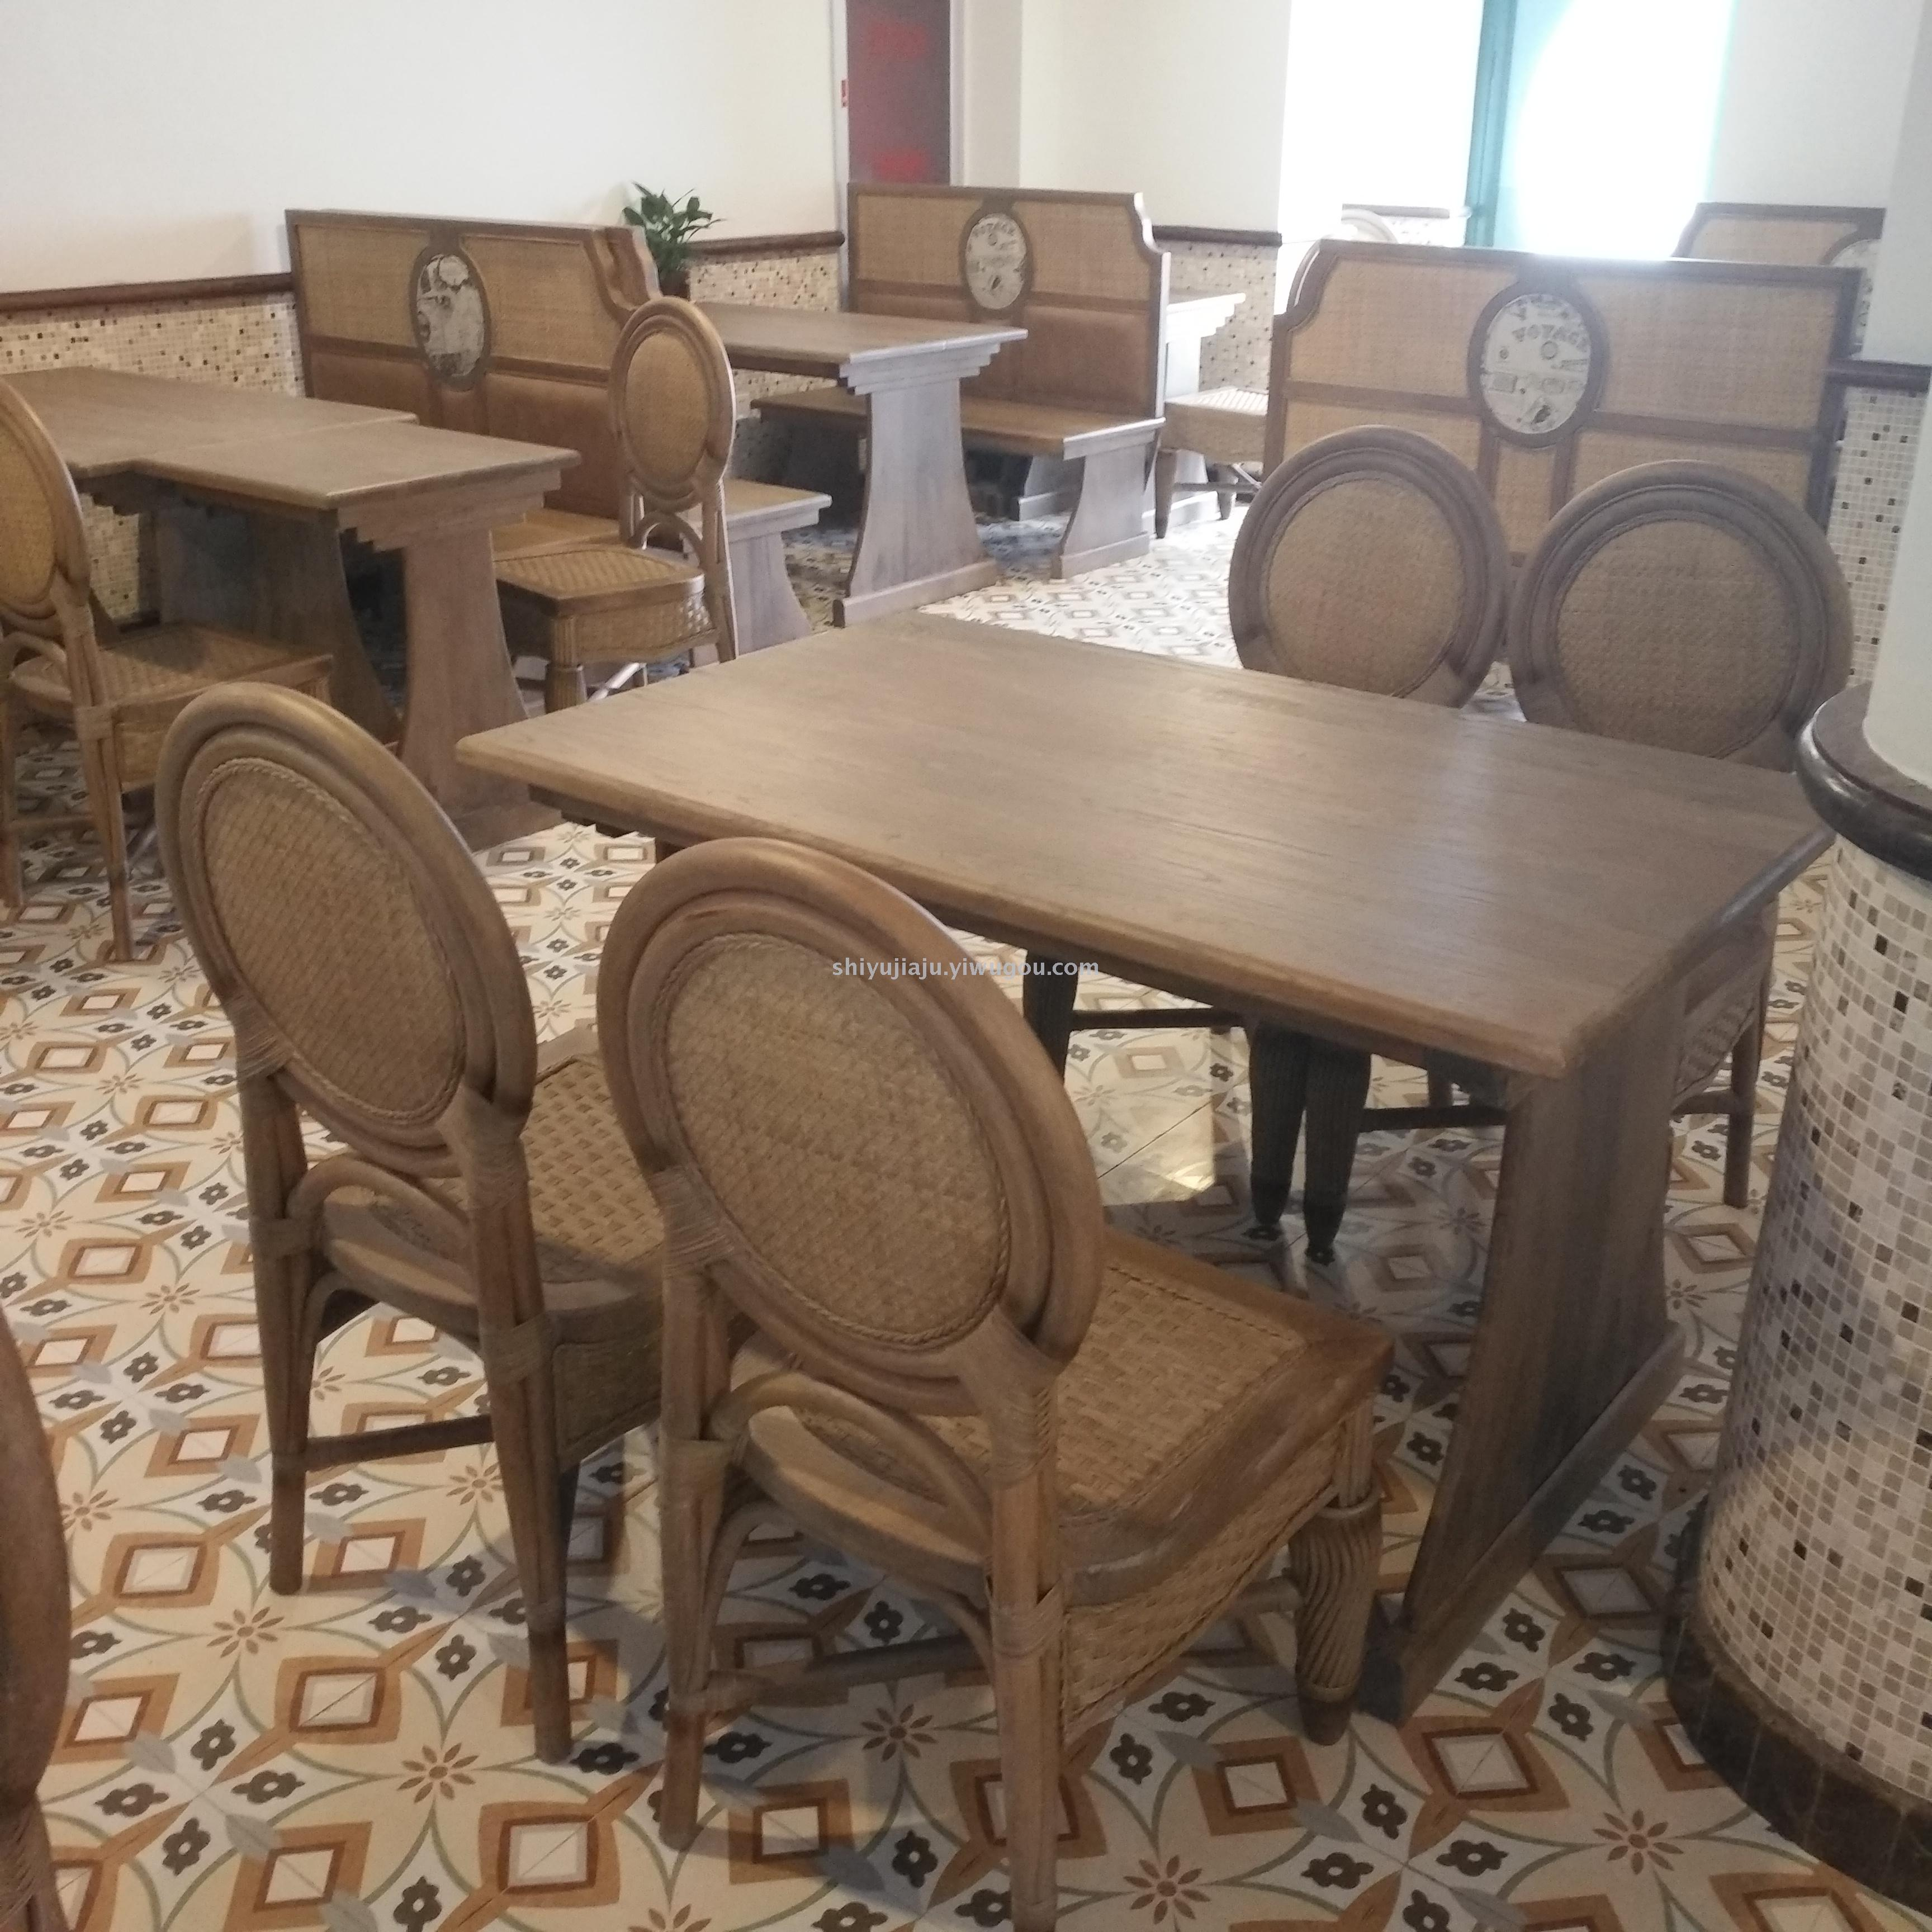 dining table and chairs hong kong football bean bag chair supply fashionable restaurant vintage rattan nongjiale classic type